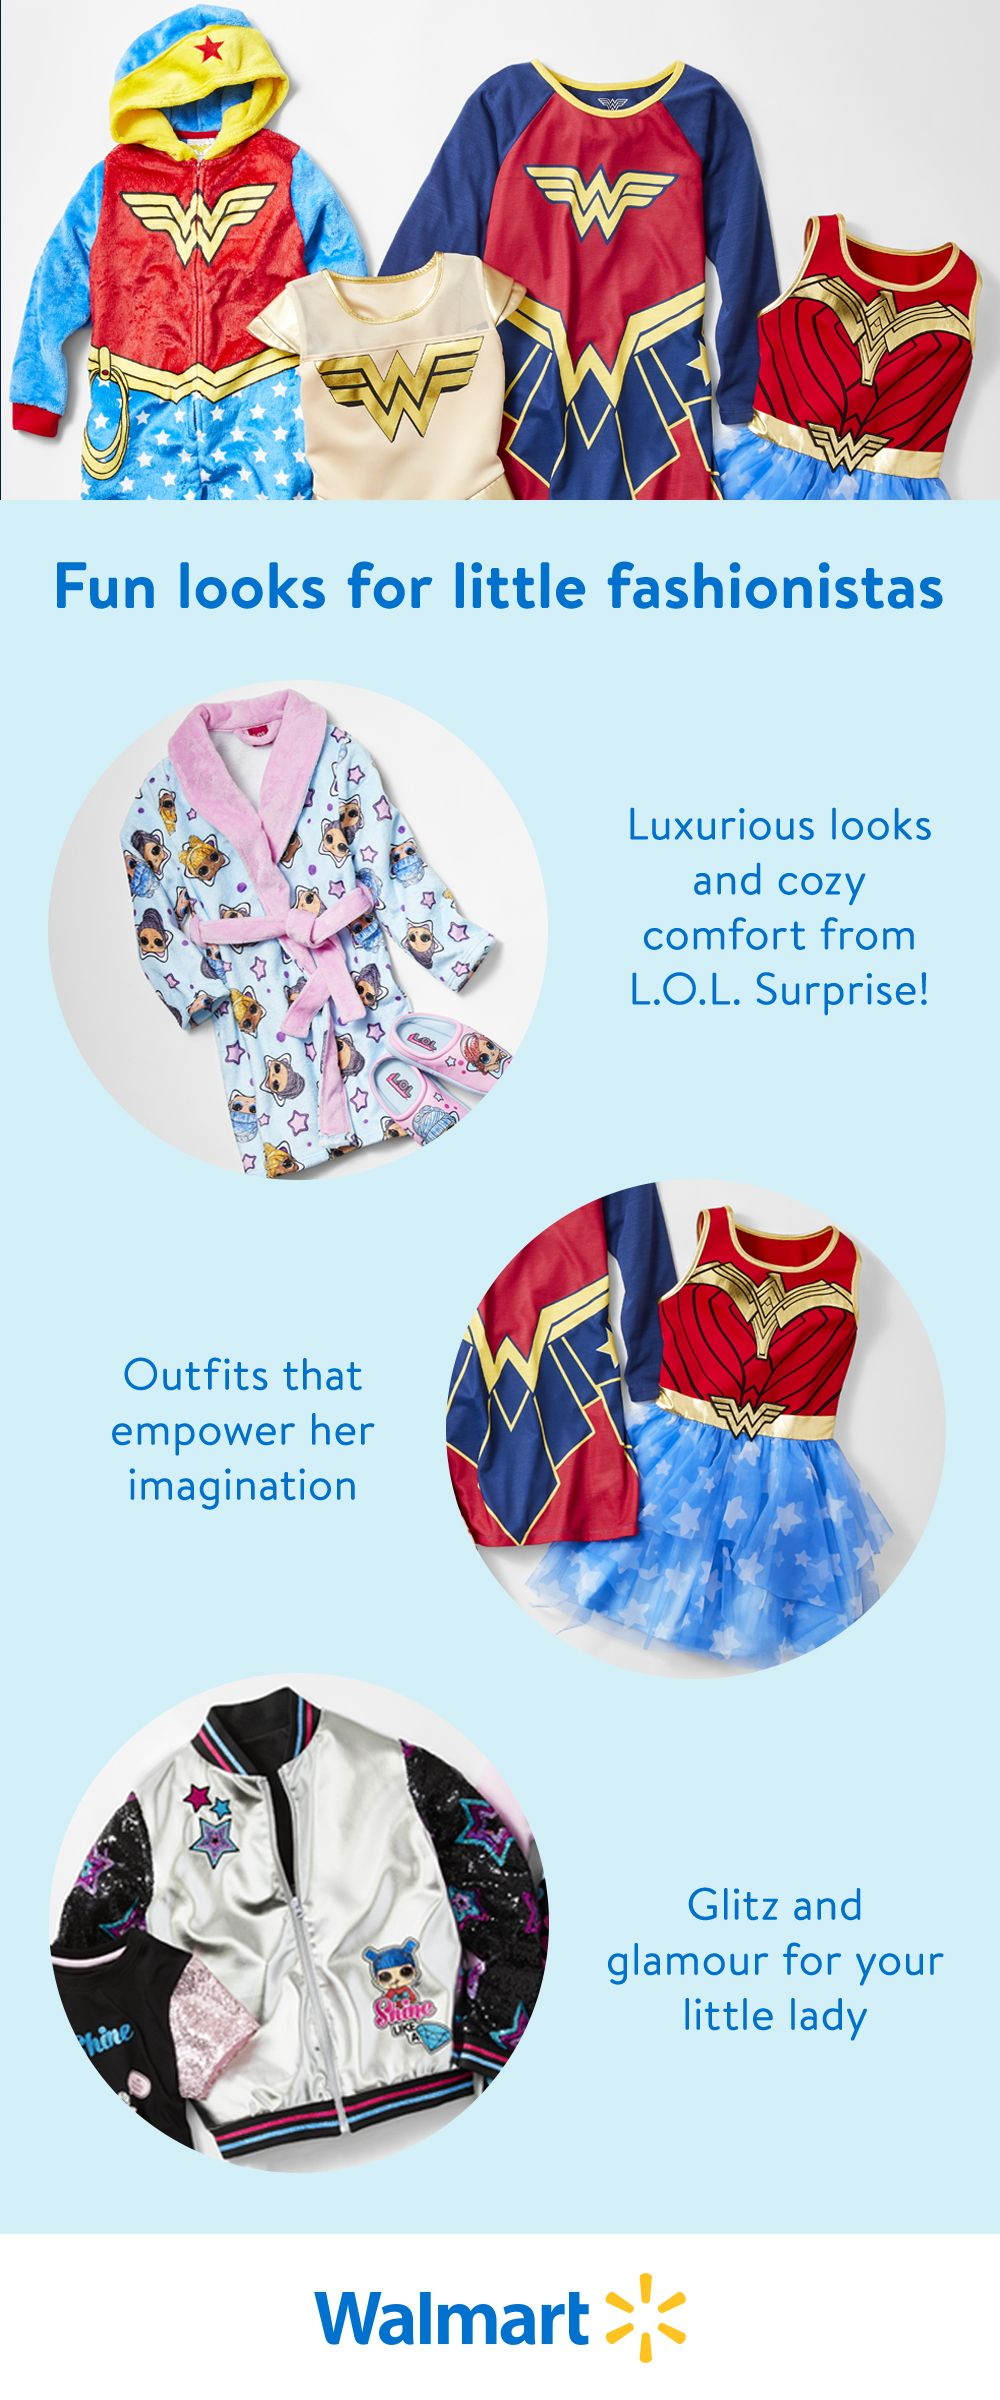 Whether she's into superheroes or high style, Walmart has the characters and fashion she loves. From Wonder Woman to L.O.L. Surprise! and everything in between, you'll find everyday low prices on girls' apparel.